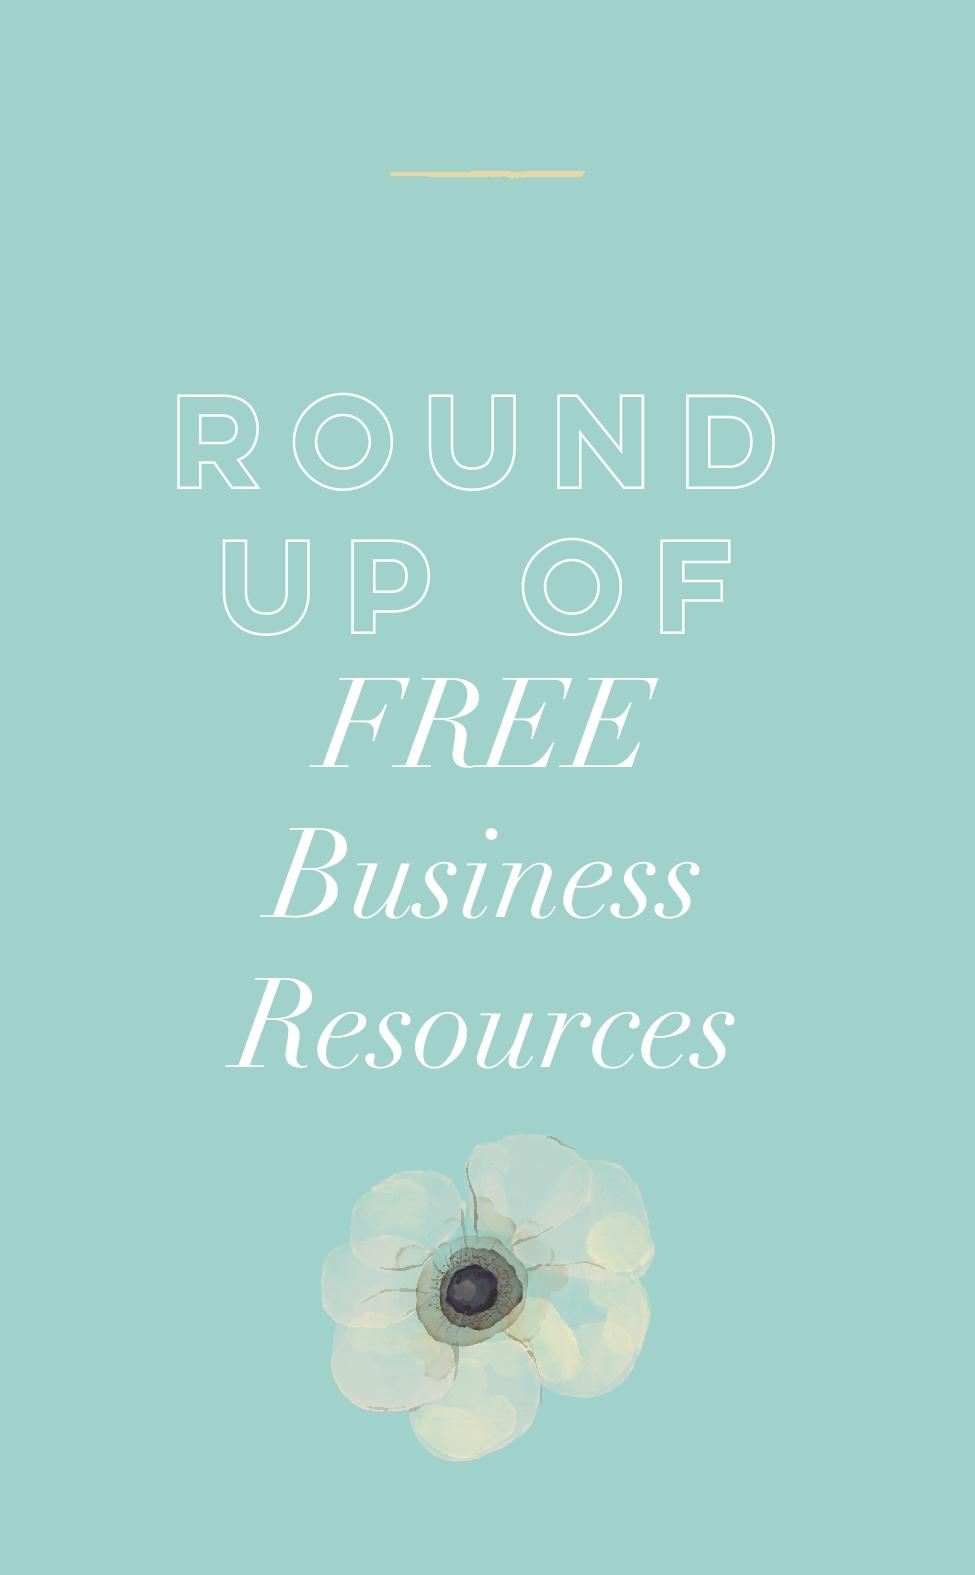 Round up of Free business resources-page-001.jpg